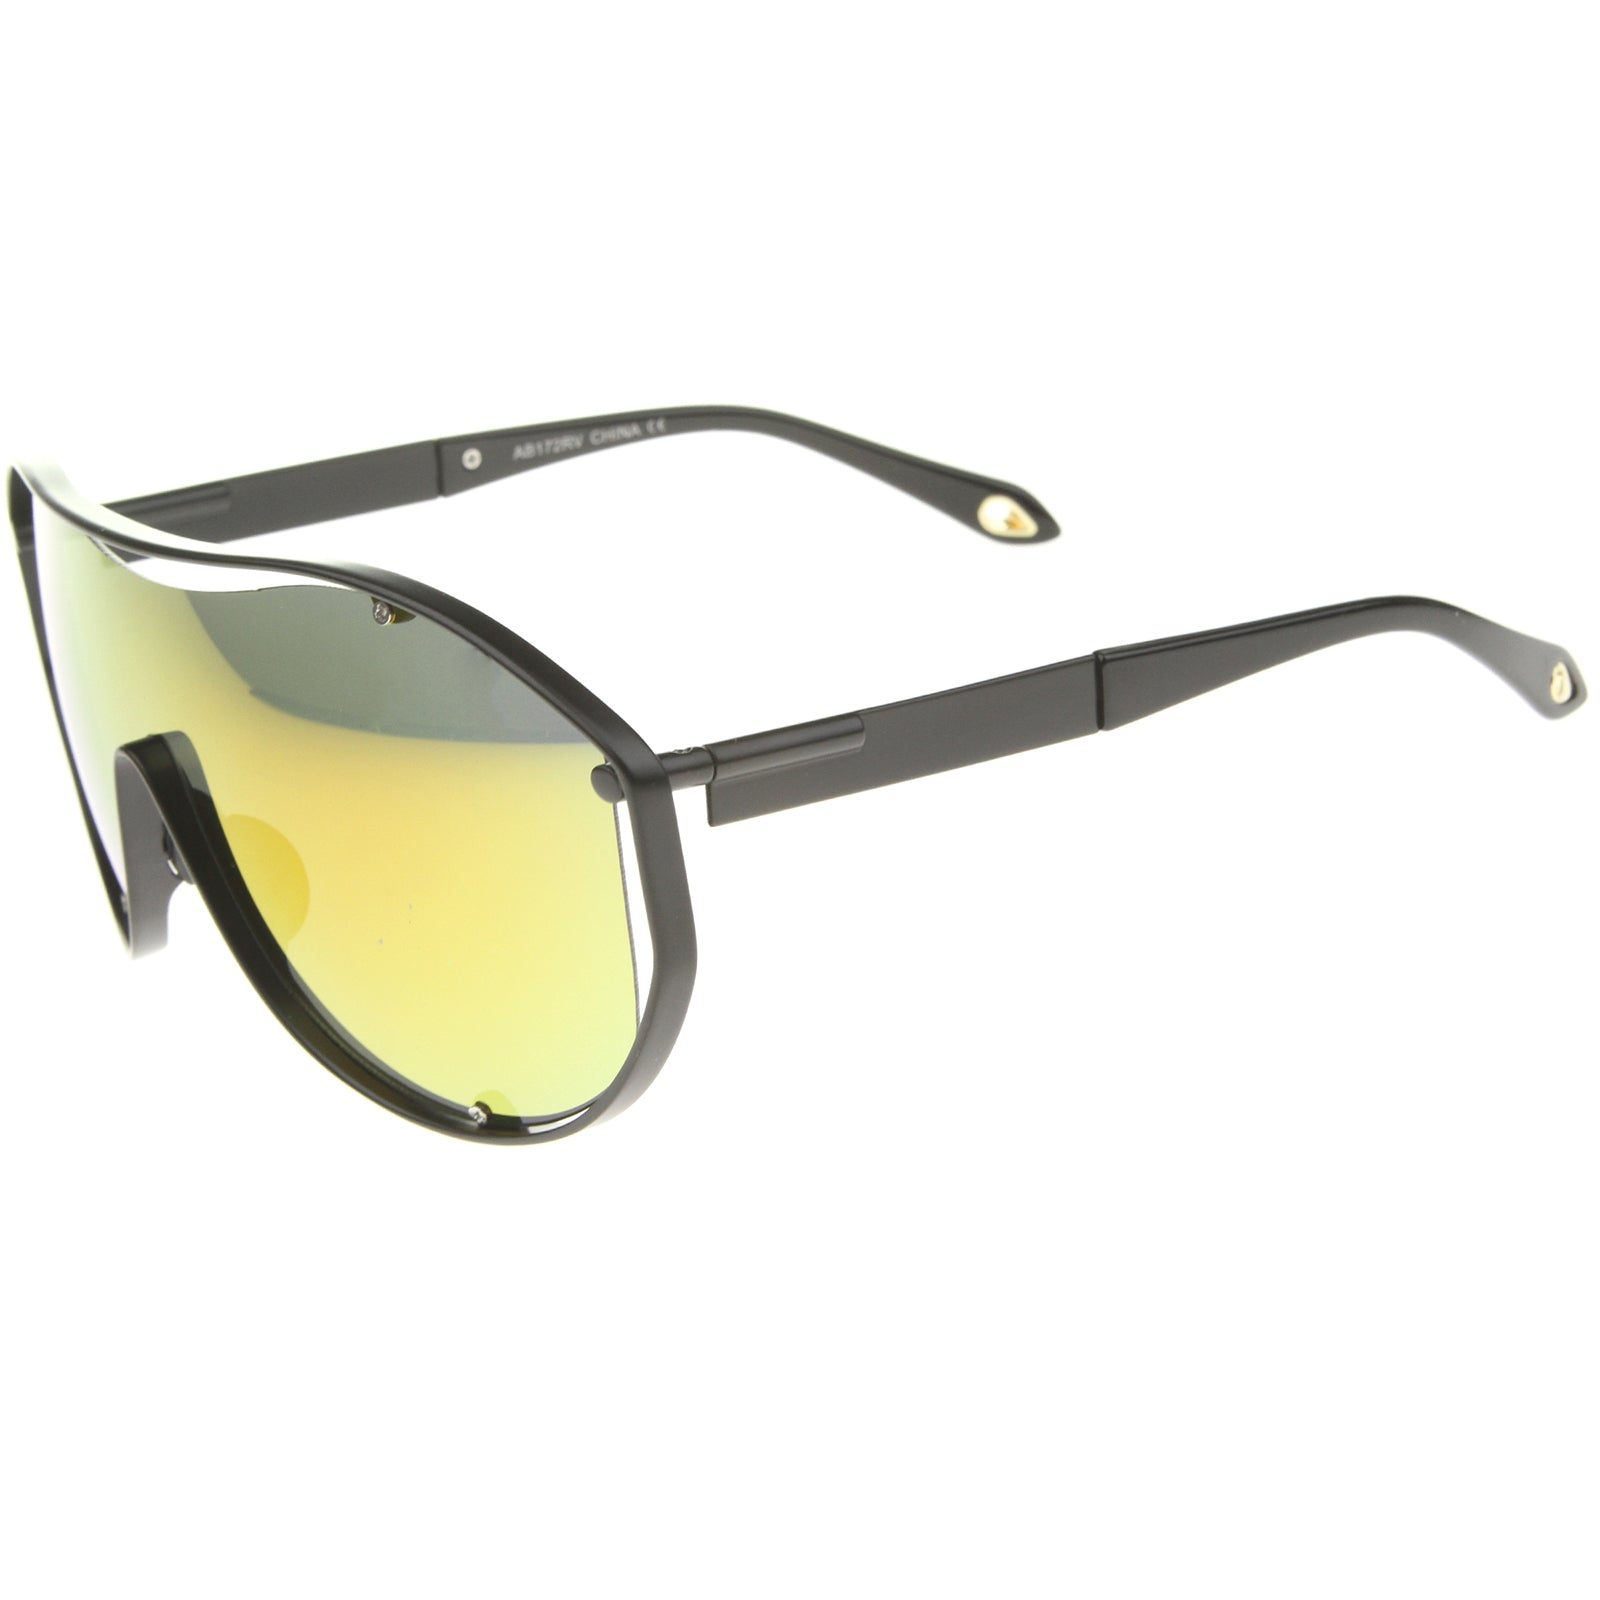 Modern Fashion Metal Frame Inner Rimless Mirror Lens Shield Sunglasses - sunglass.la - 7